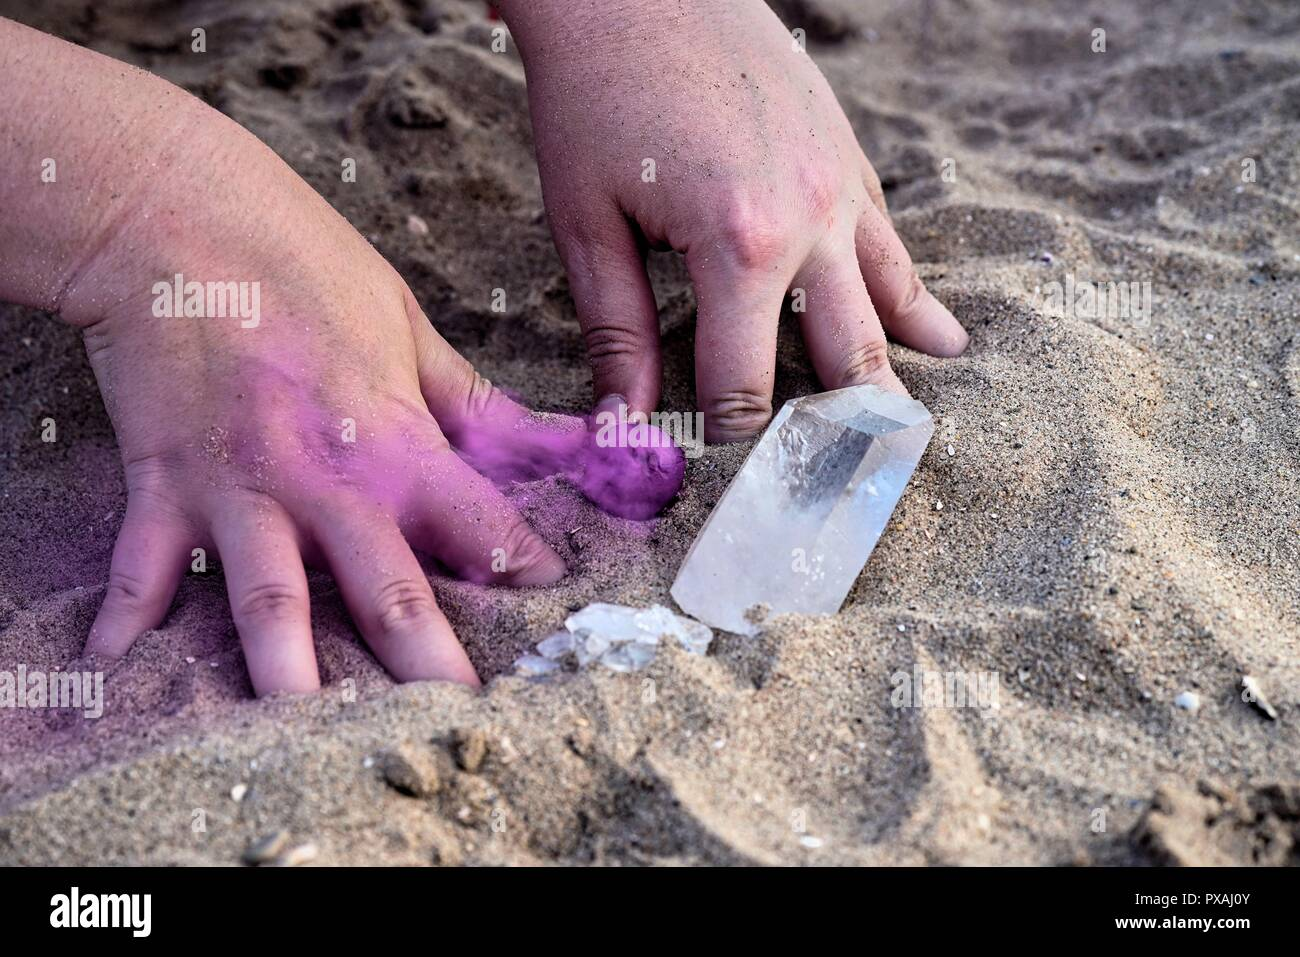 Hands playing in the sand with smoke bombs and crystals - Stock Image